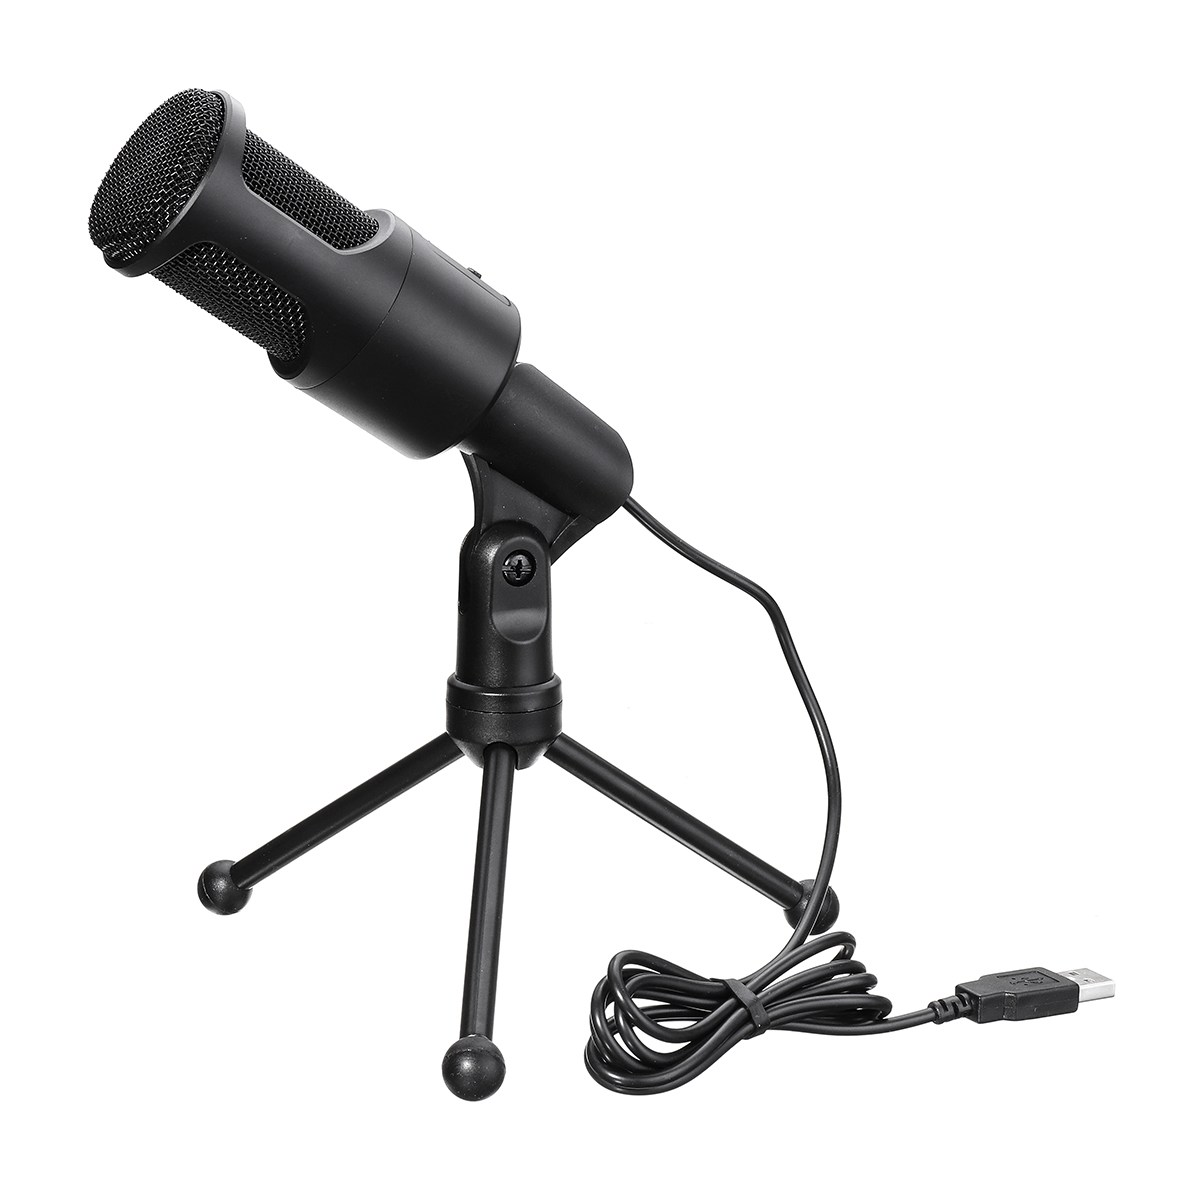 1Set Desktop microphone With Stand Clip USB Handheld Microphones For PC Laptop Mic Chatting Karaoke